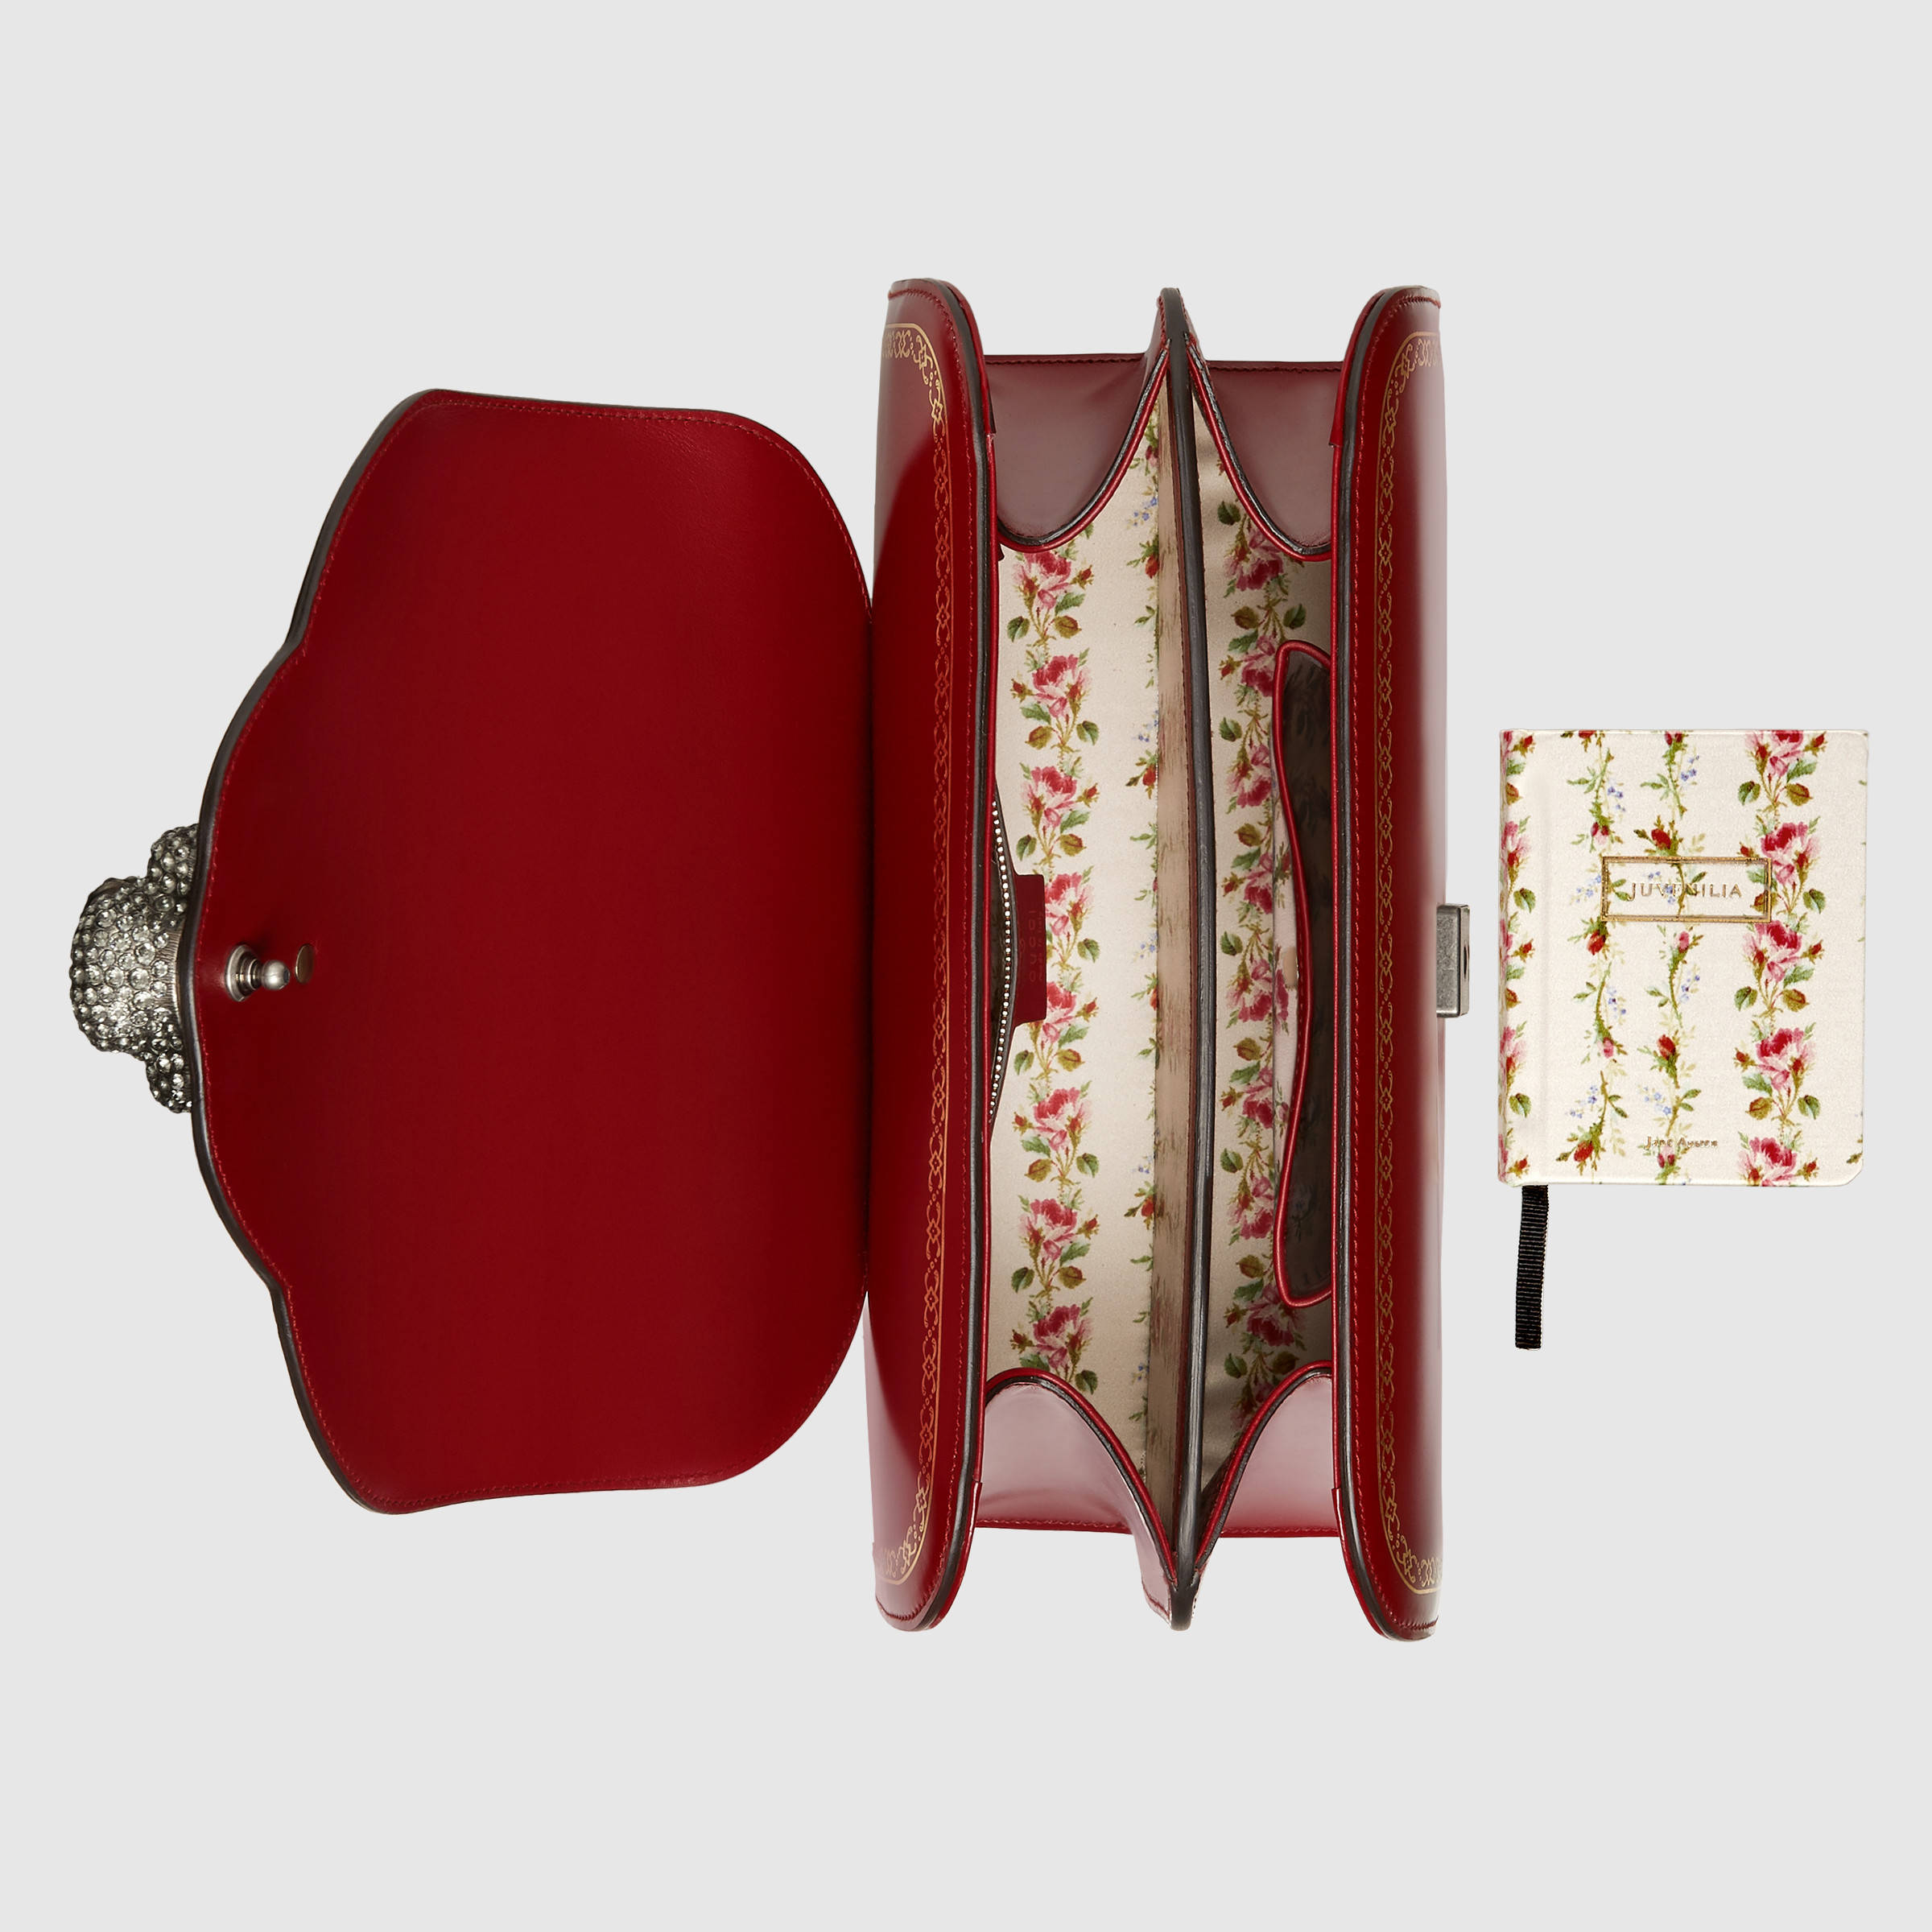 0020Gucci's limited edition Jane Austen book_Light-Frame-print-leather-top-handle-bag